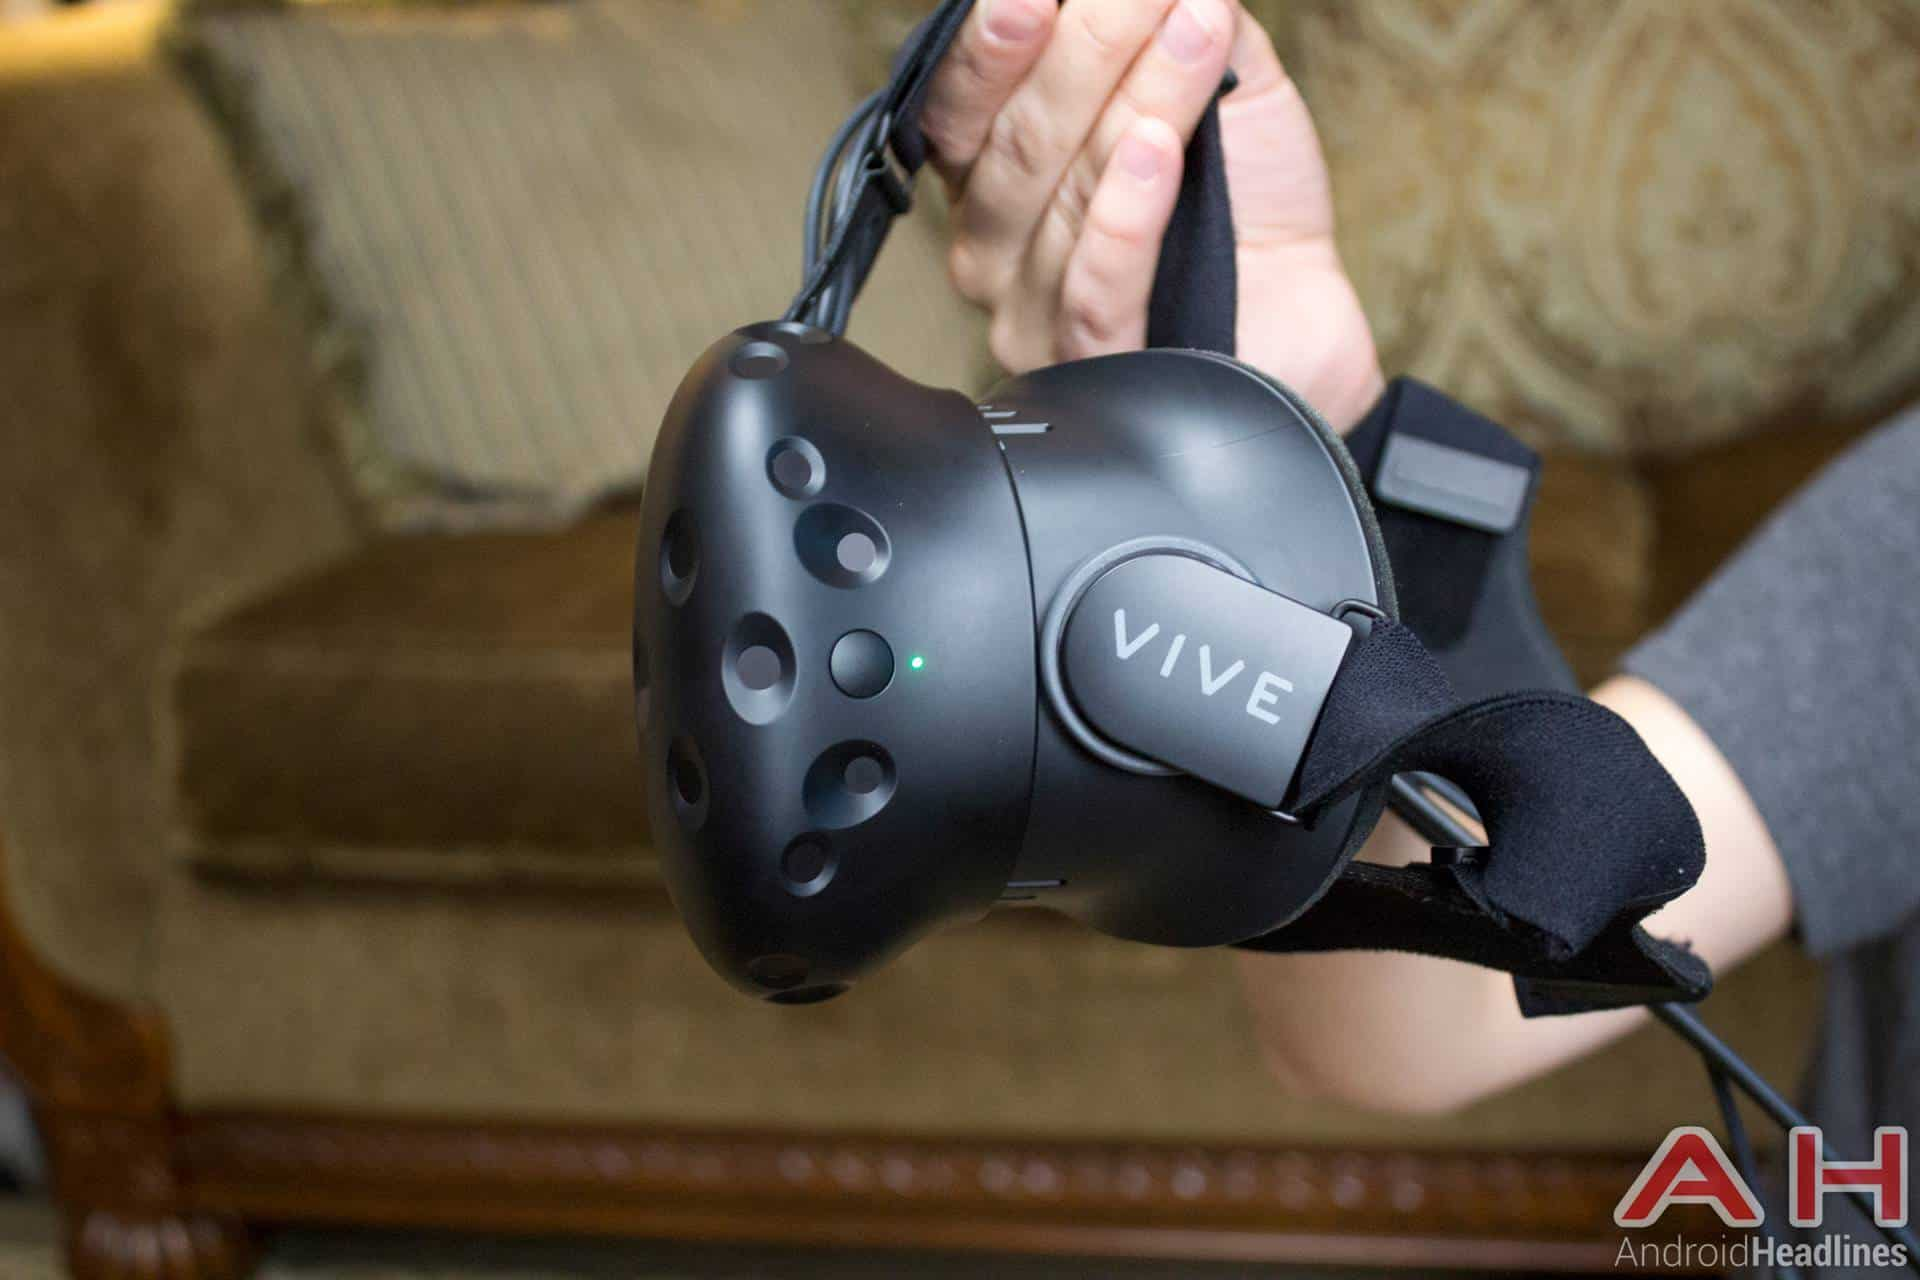 HTC Vive AH NS LED power